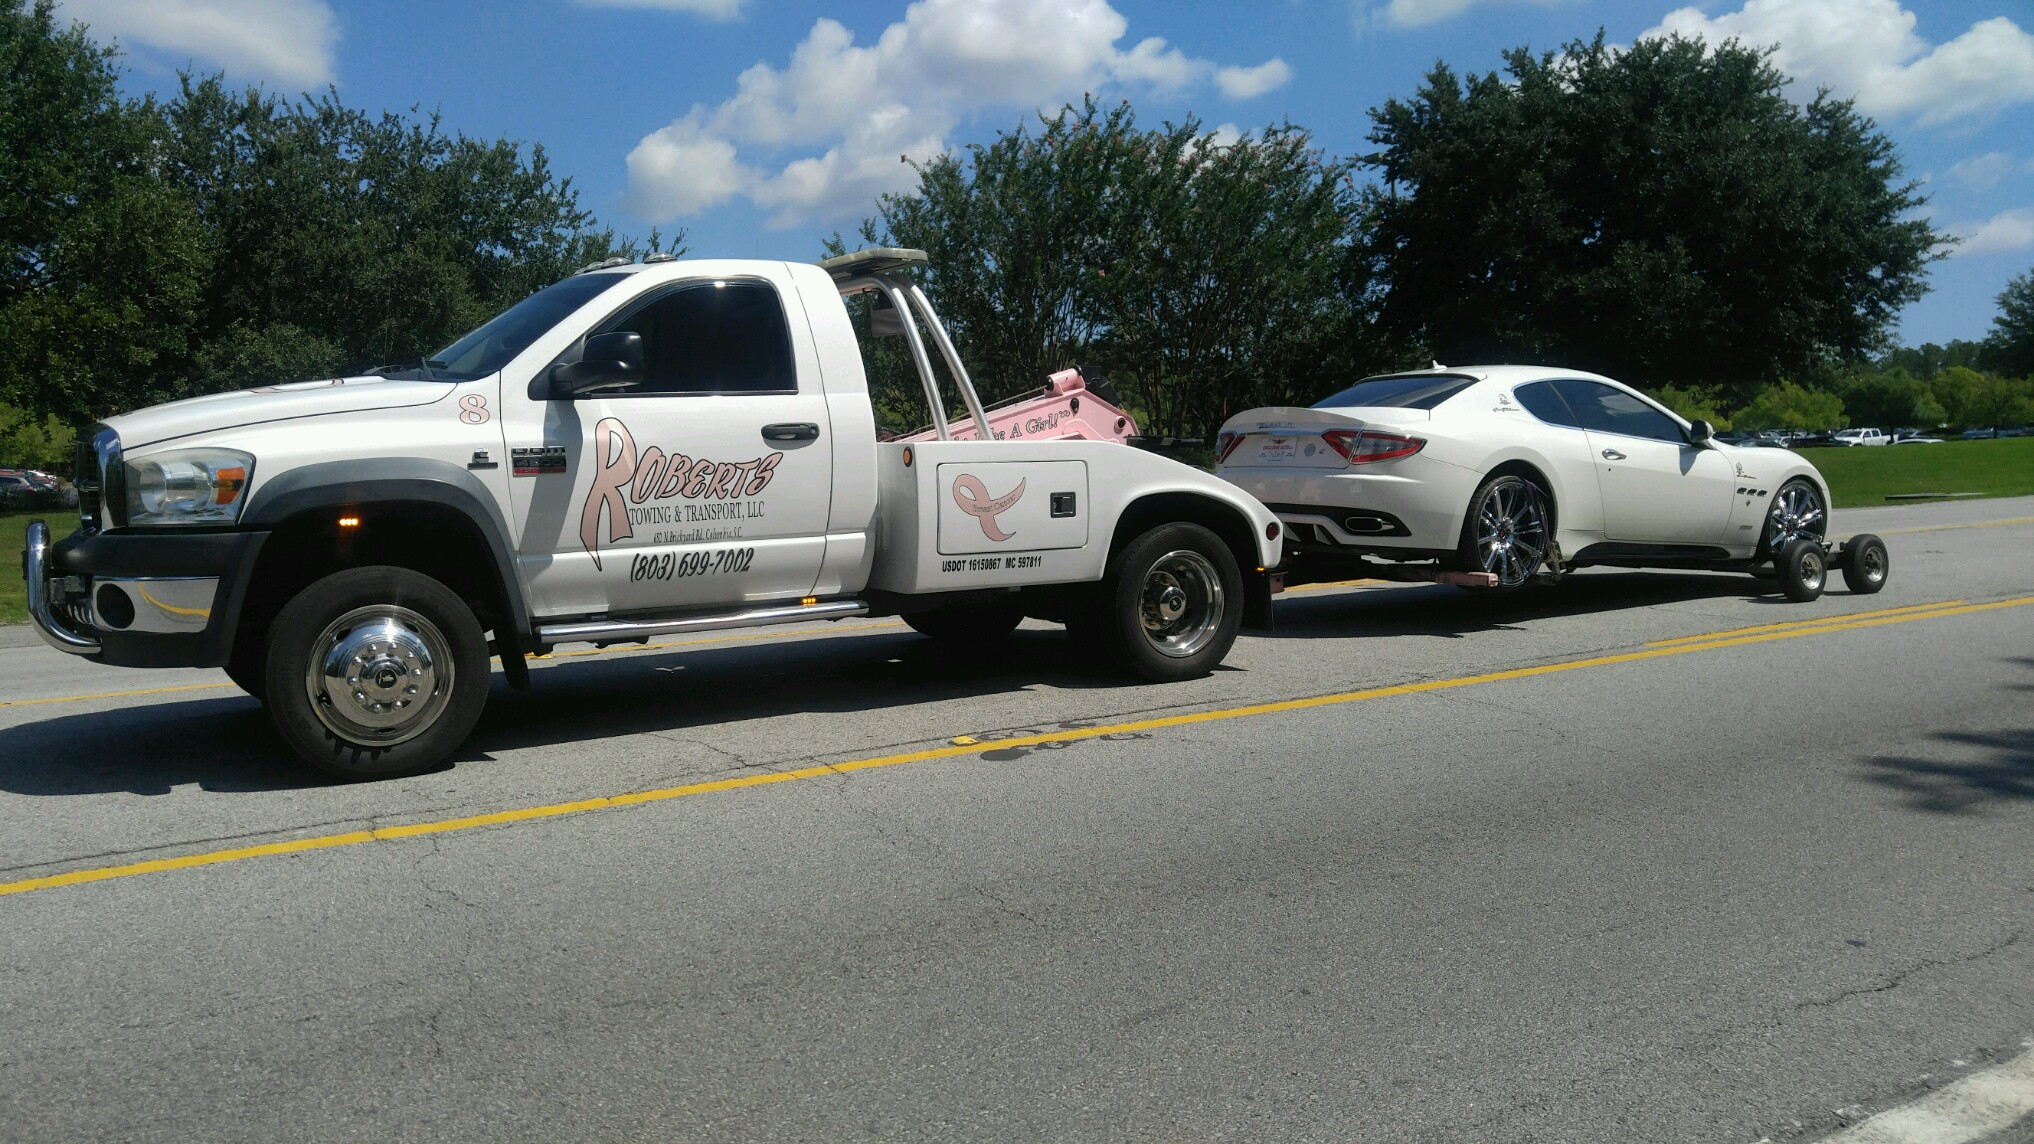 Automotive Locksmith Towing Roadside Assistance Columbia Sc Roberts Towing Transport